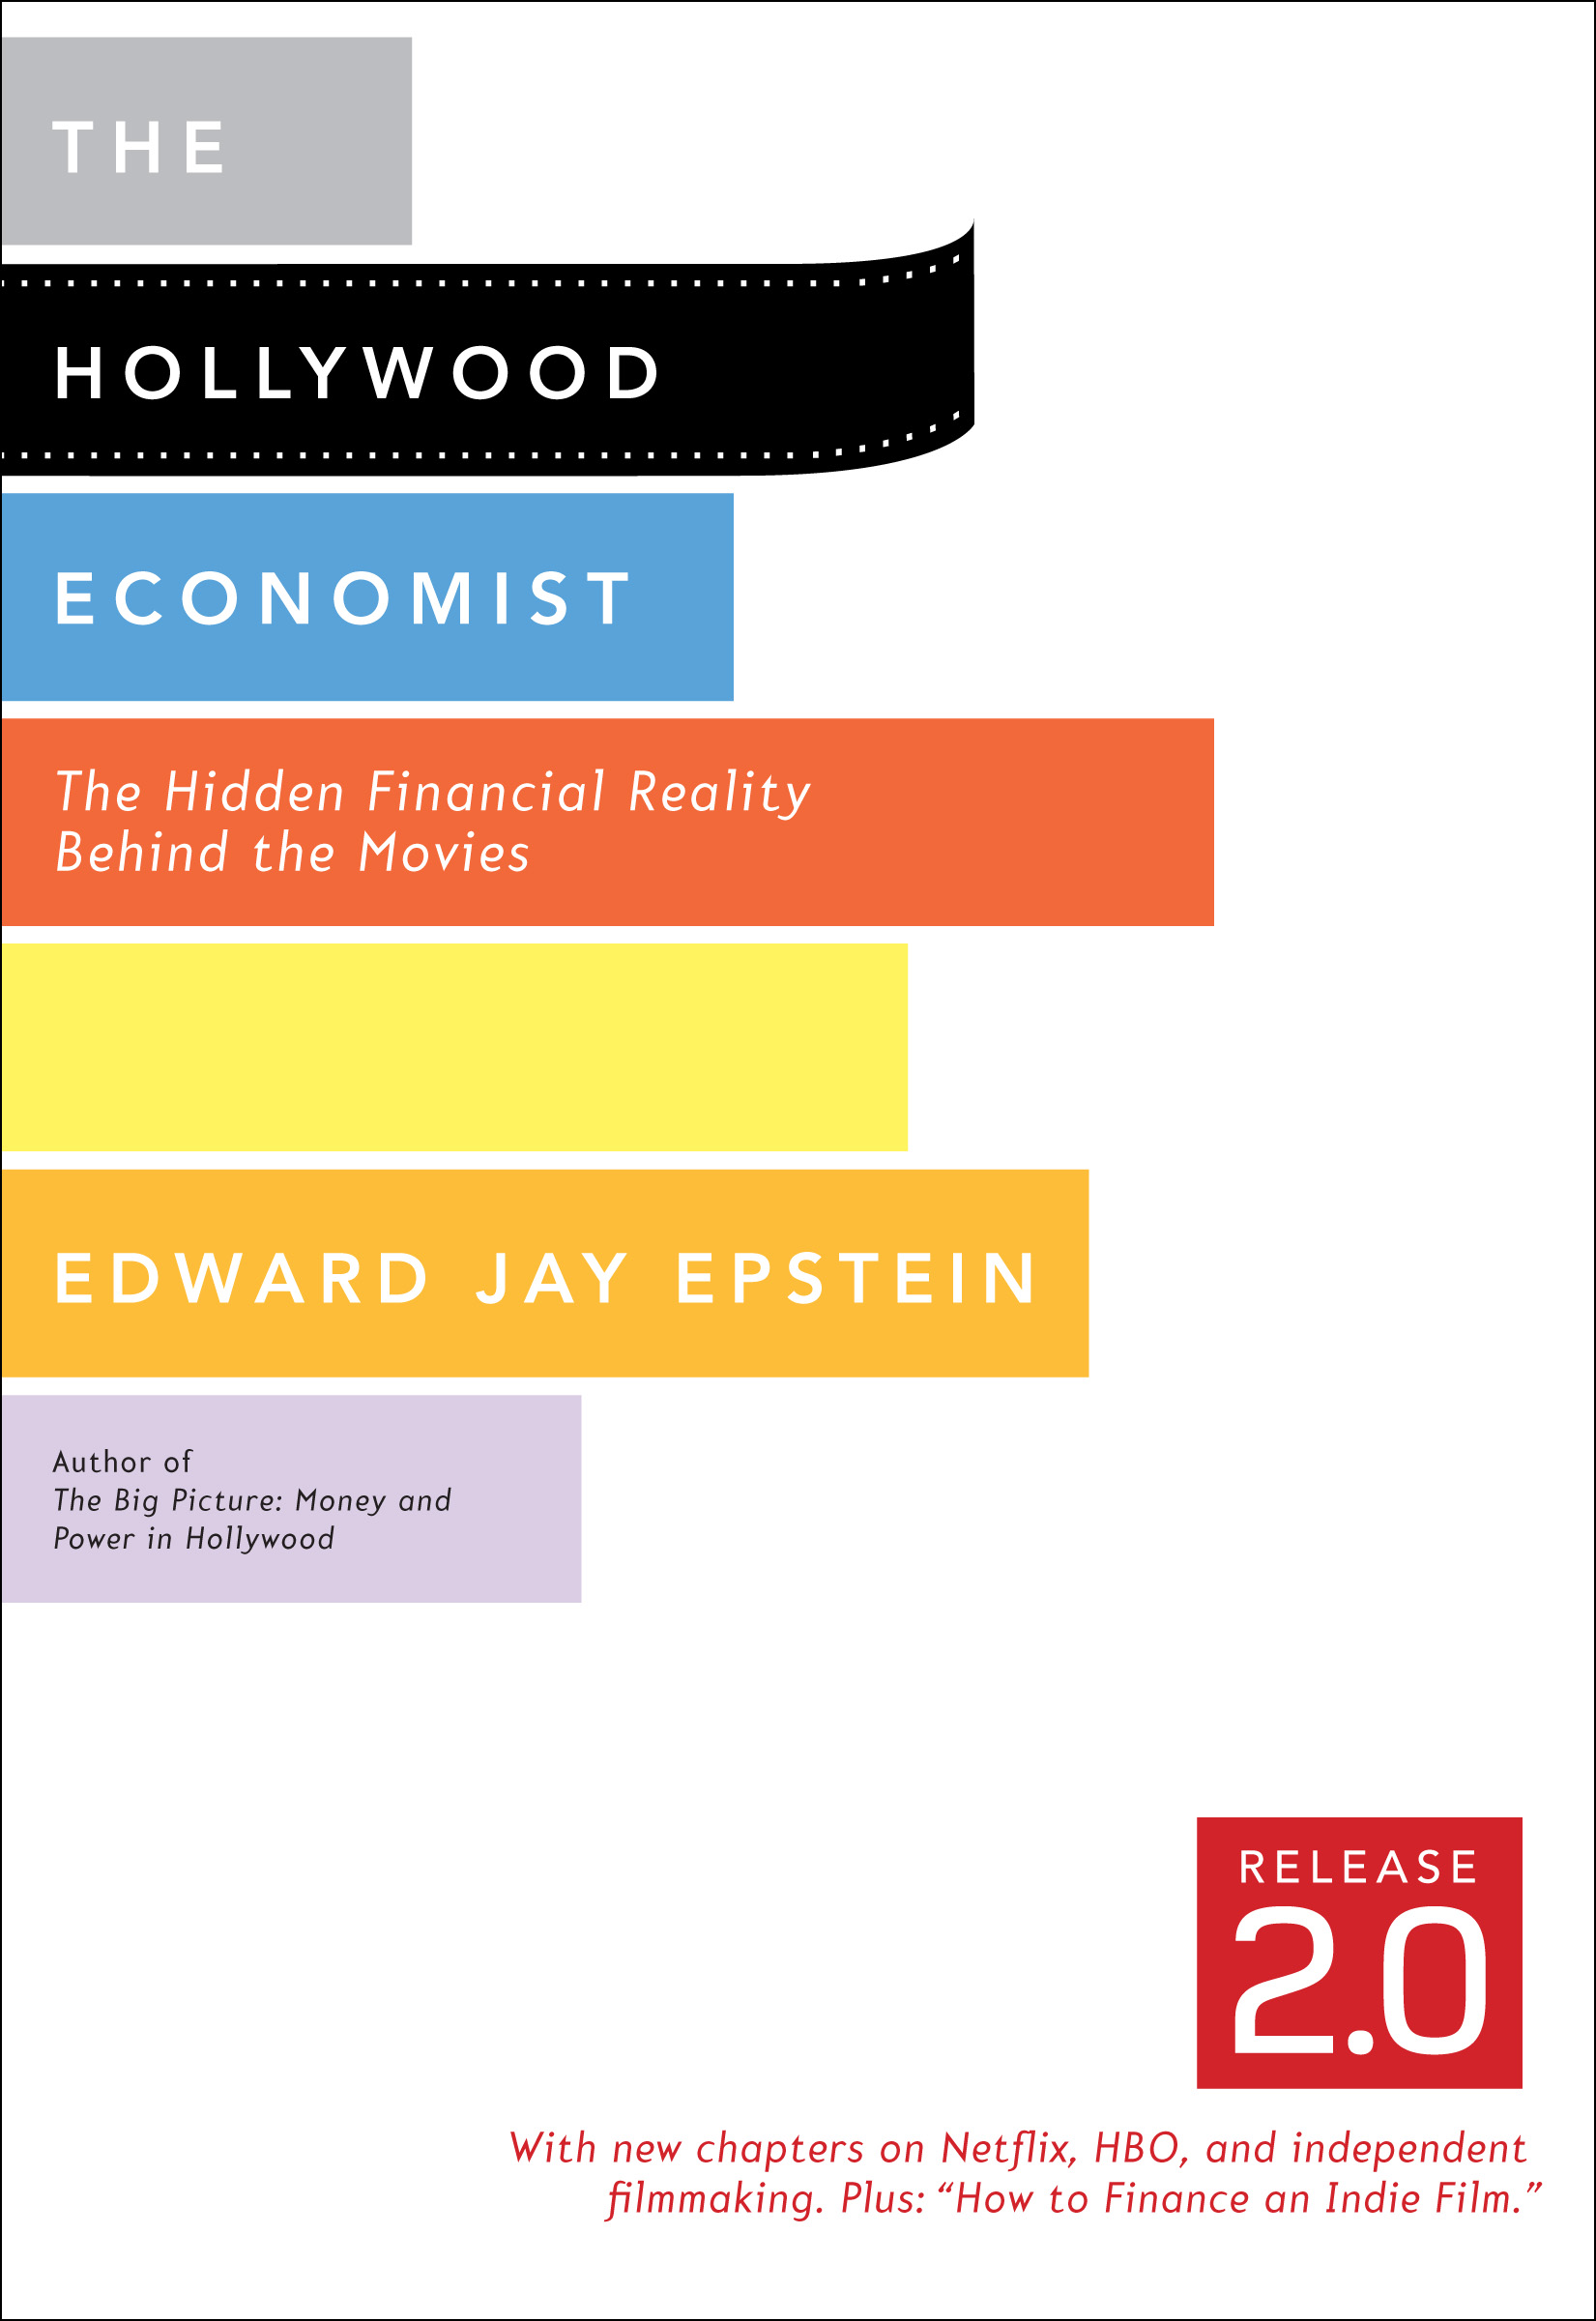 The-Hollywood-Economist-2.0-300dpi